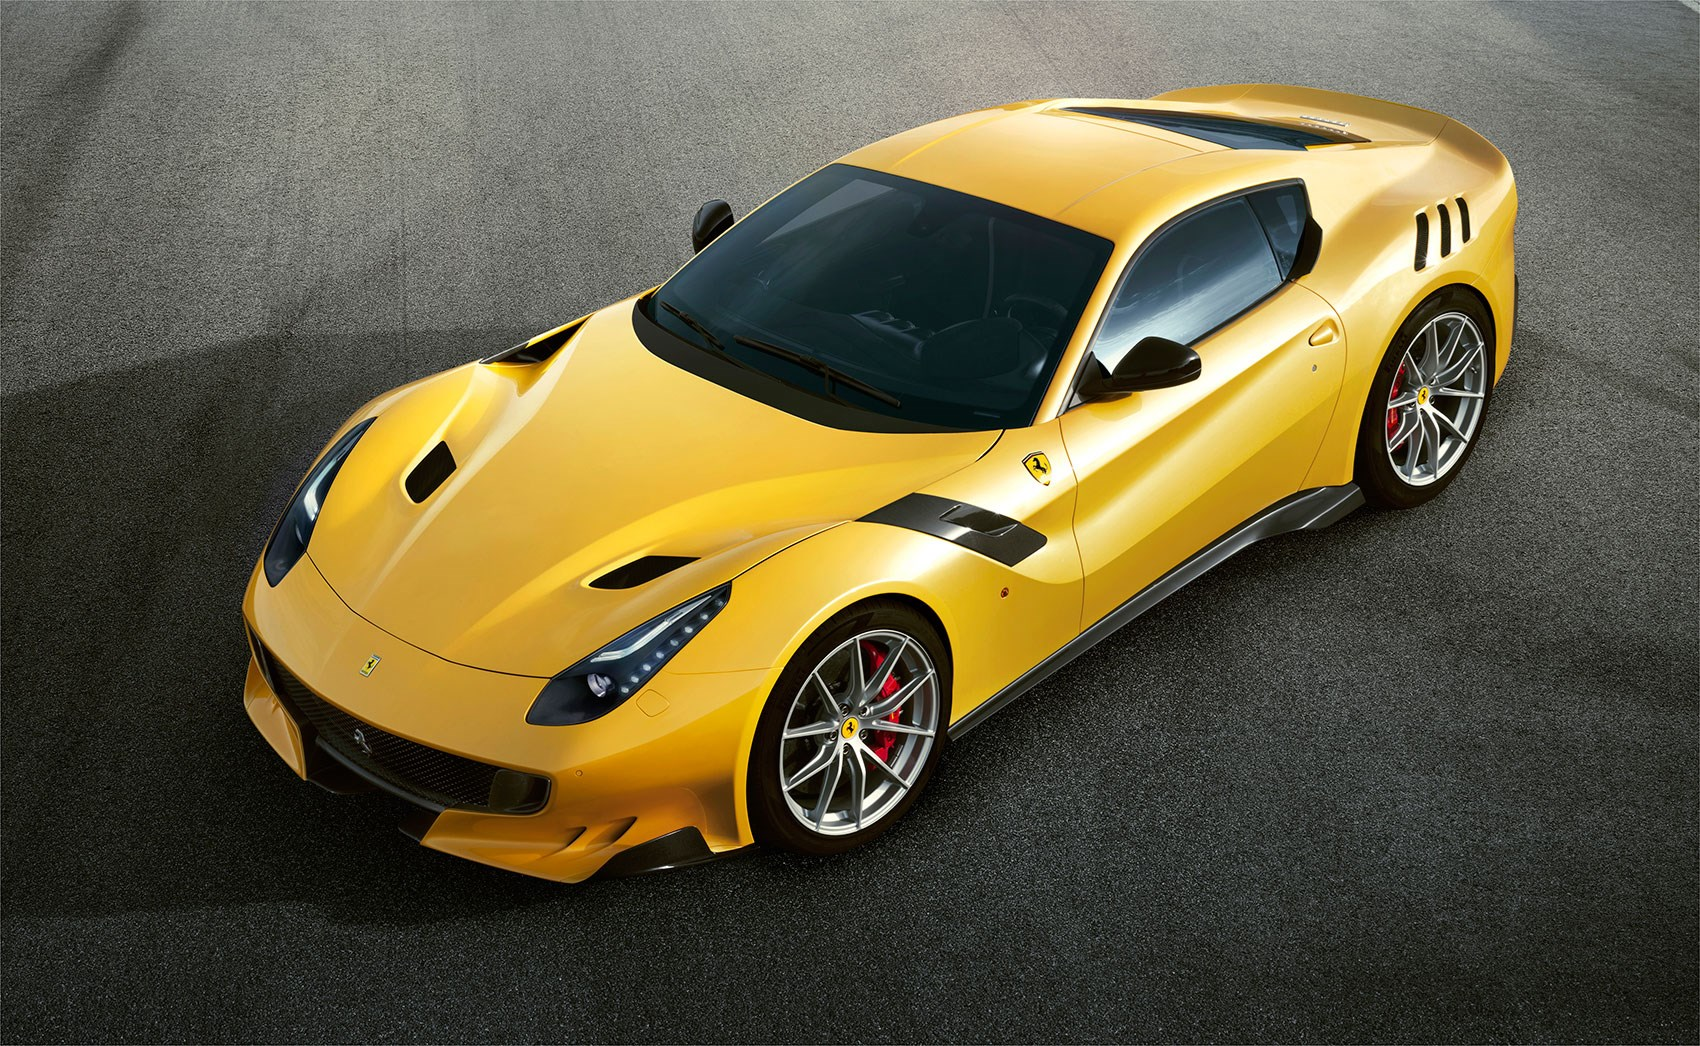 Introducing the new Ferrari F12 tdf not a typo another name for